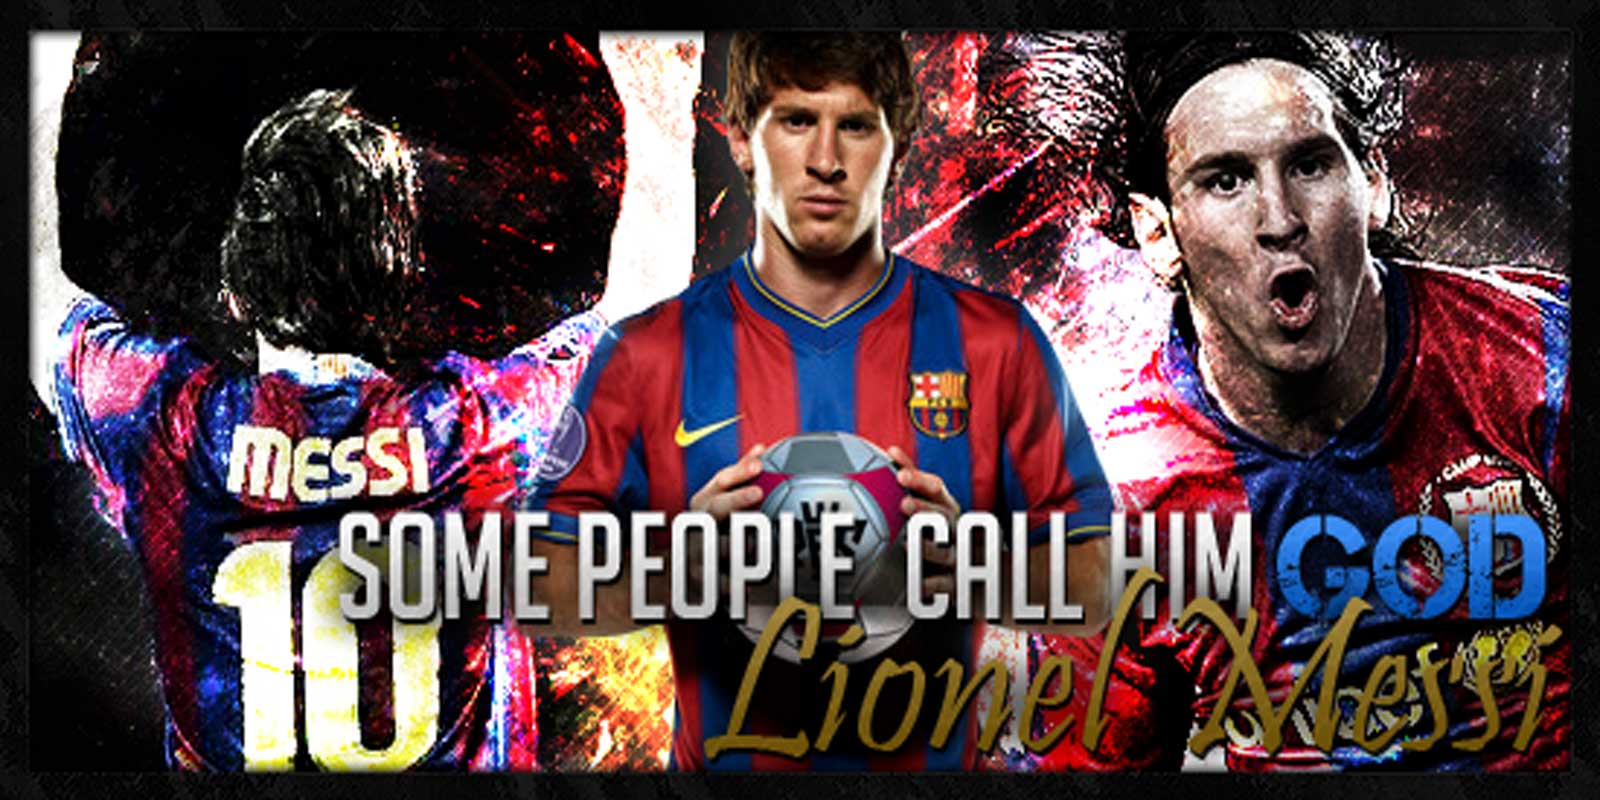 Messi And His Family His paternal family originates